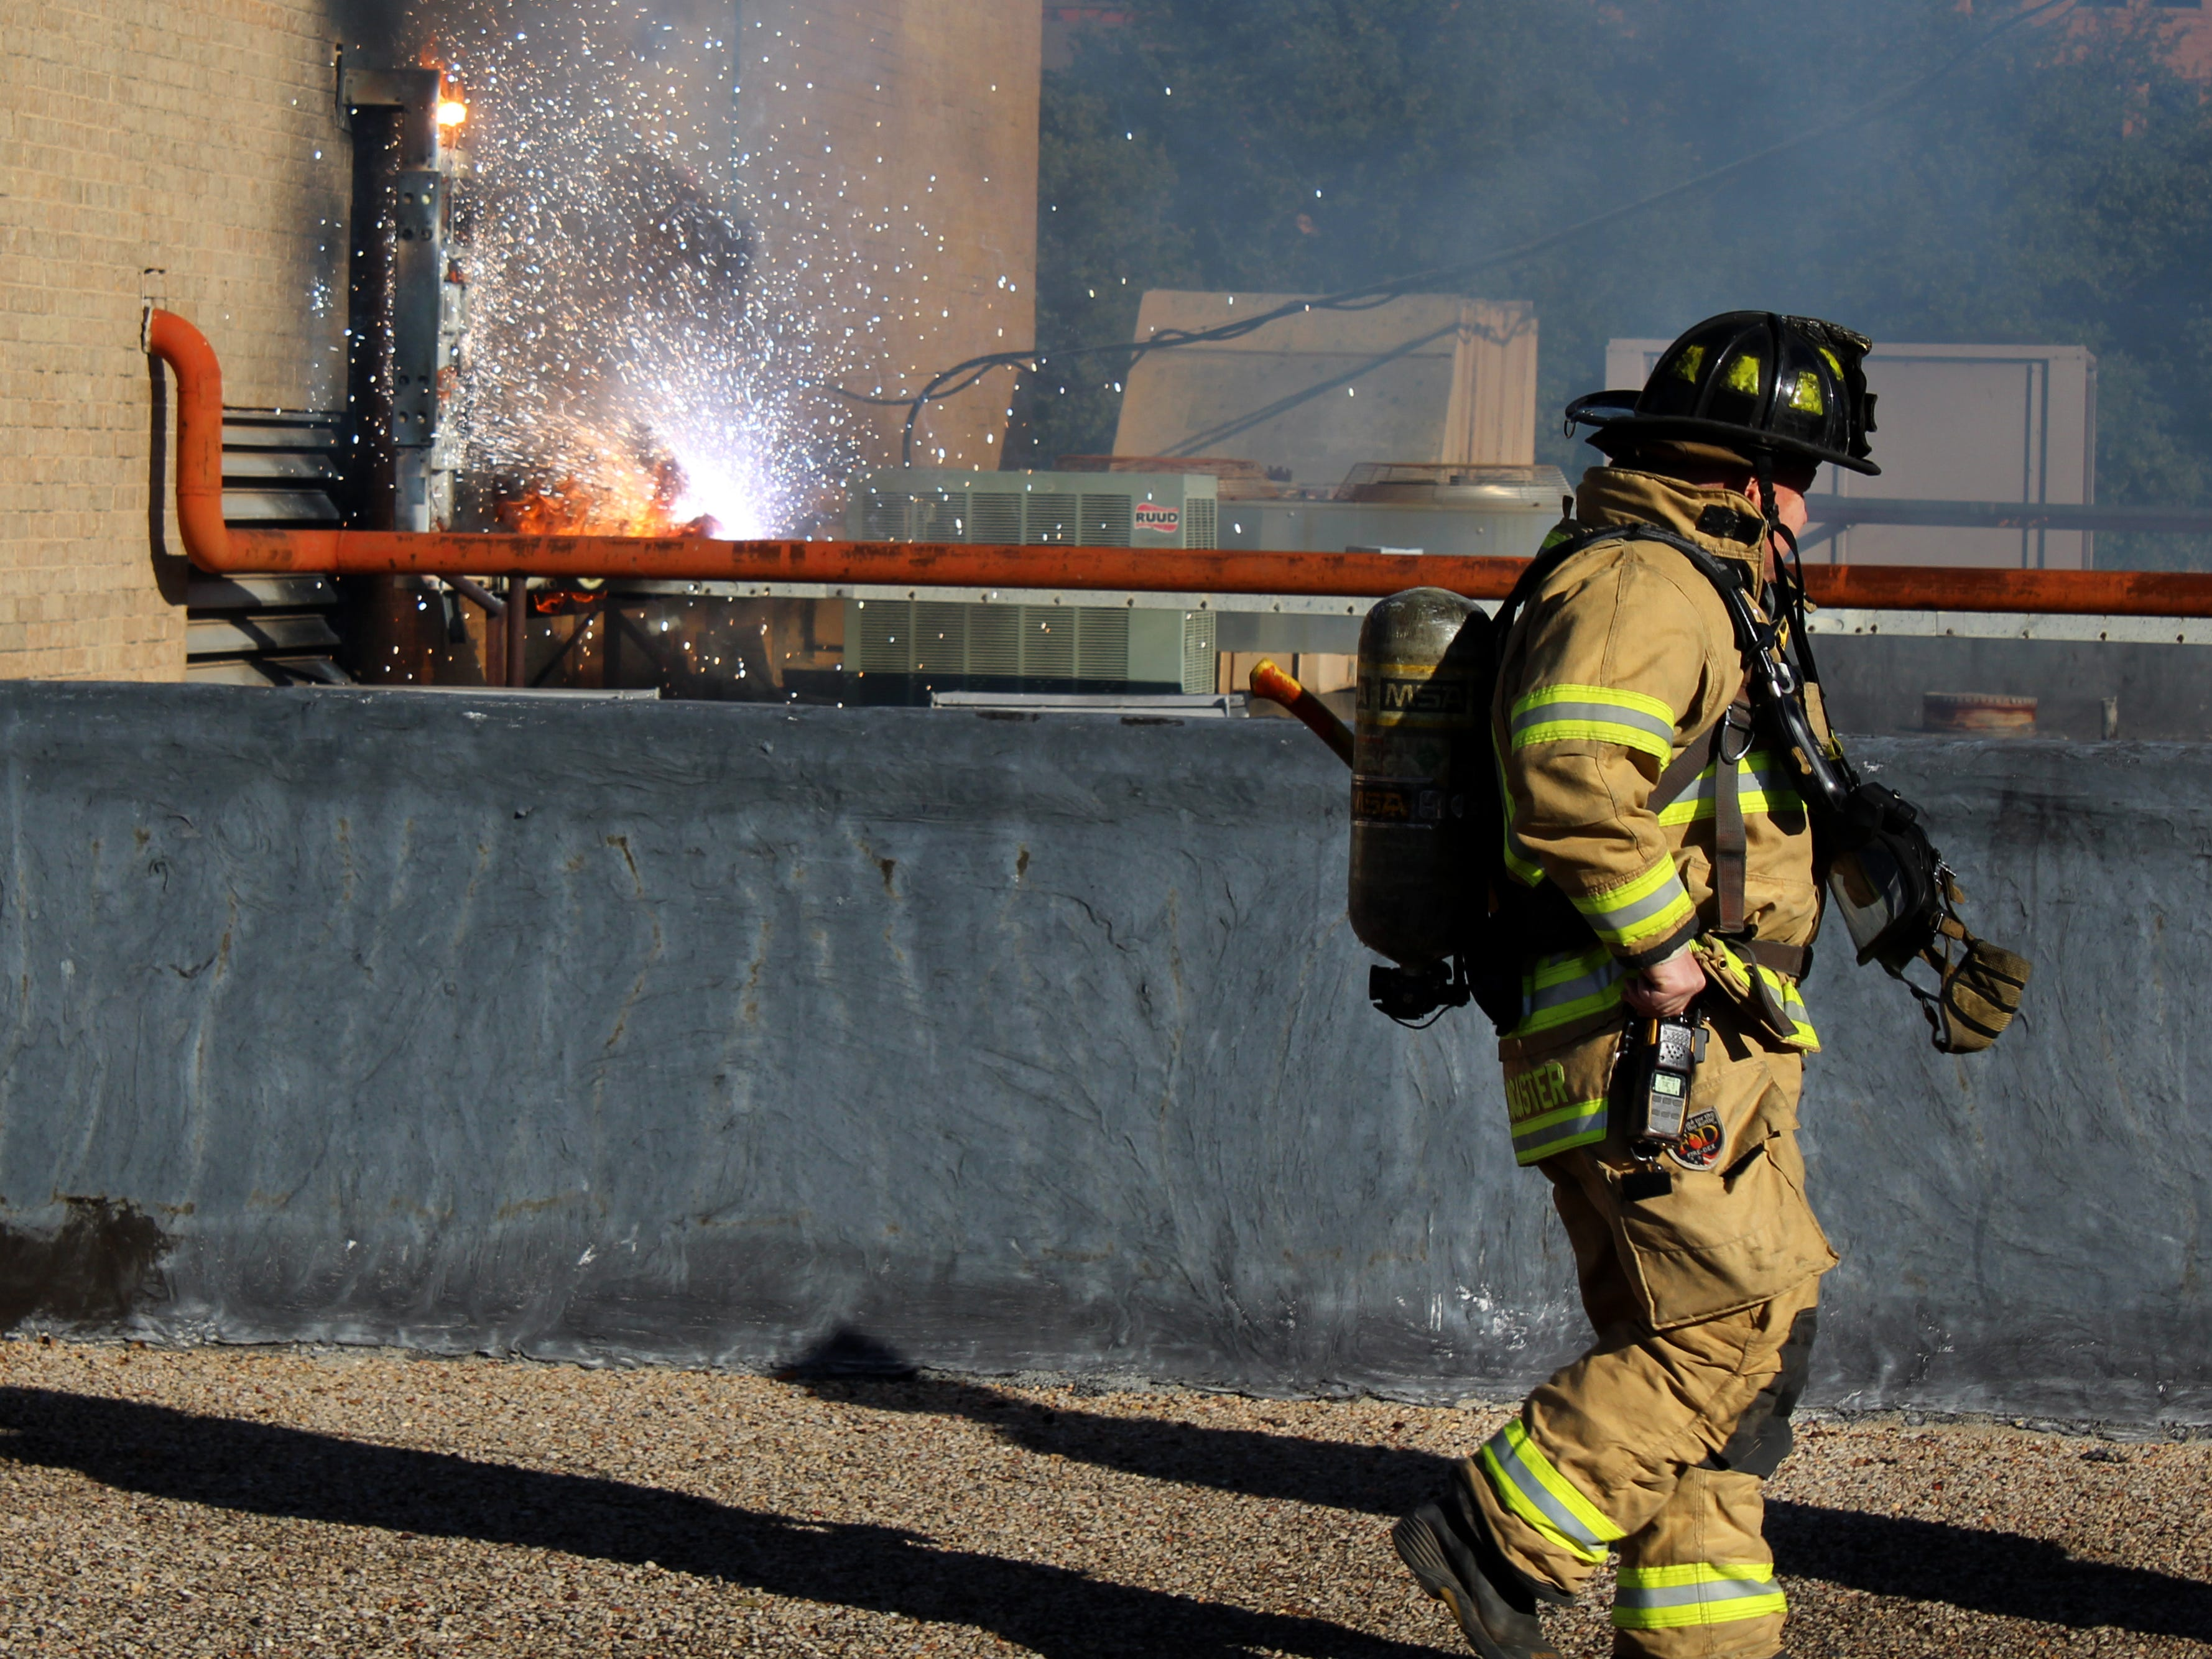 Sparks fly from the east side of the Abilene Reporter-News utility room as a firefighter searches the roof for any more trouble spots Thursday Nov. 15, 2018. The sparks developed into a two-alarm fire, forcing the evacuation of the newspaper.